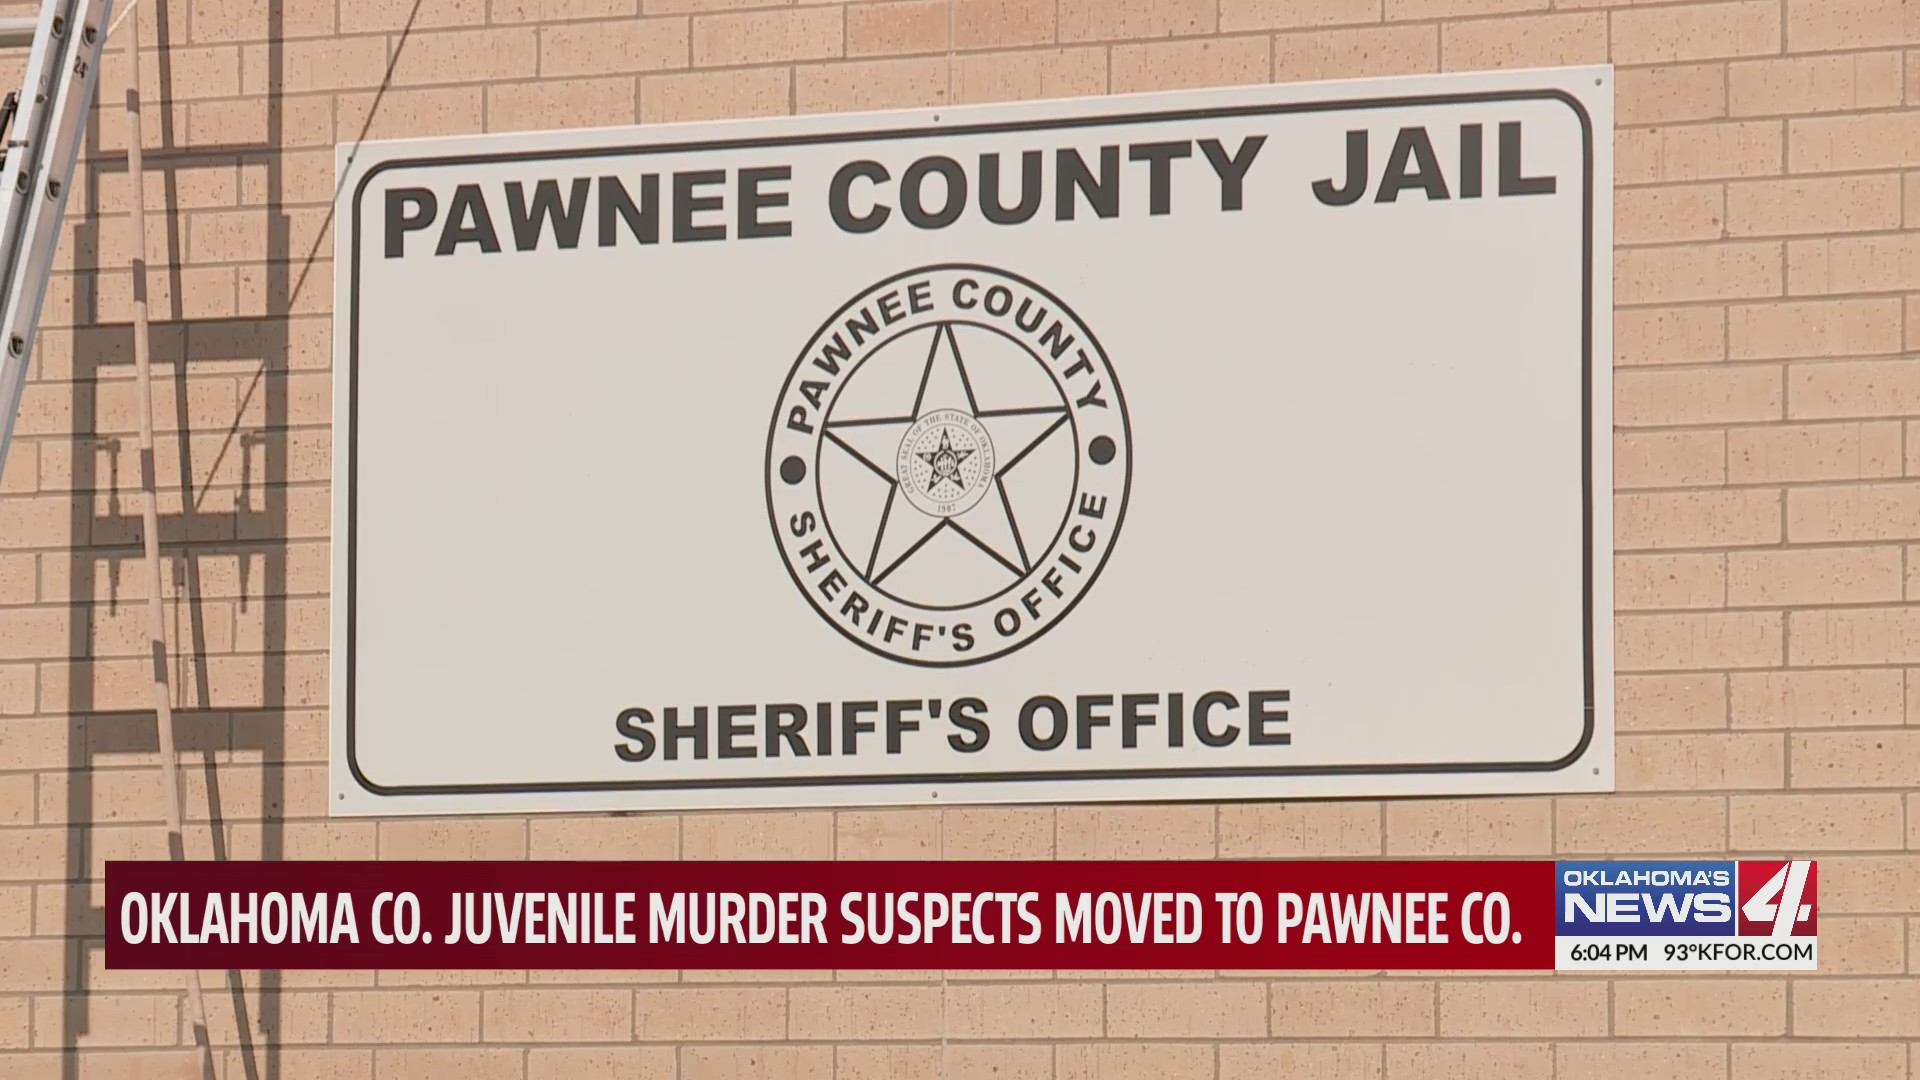 Sign for Pawnee County Jail and Sheriff's Office